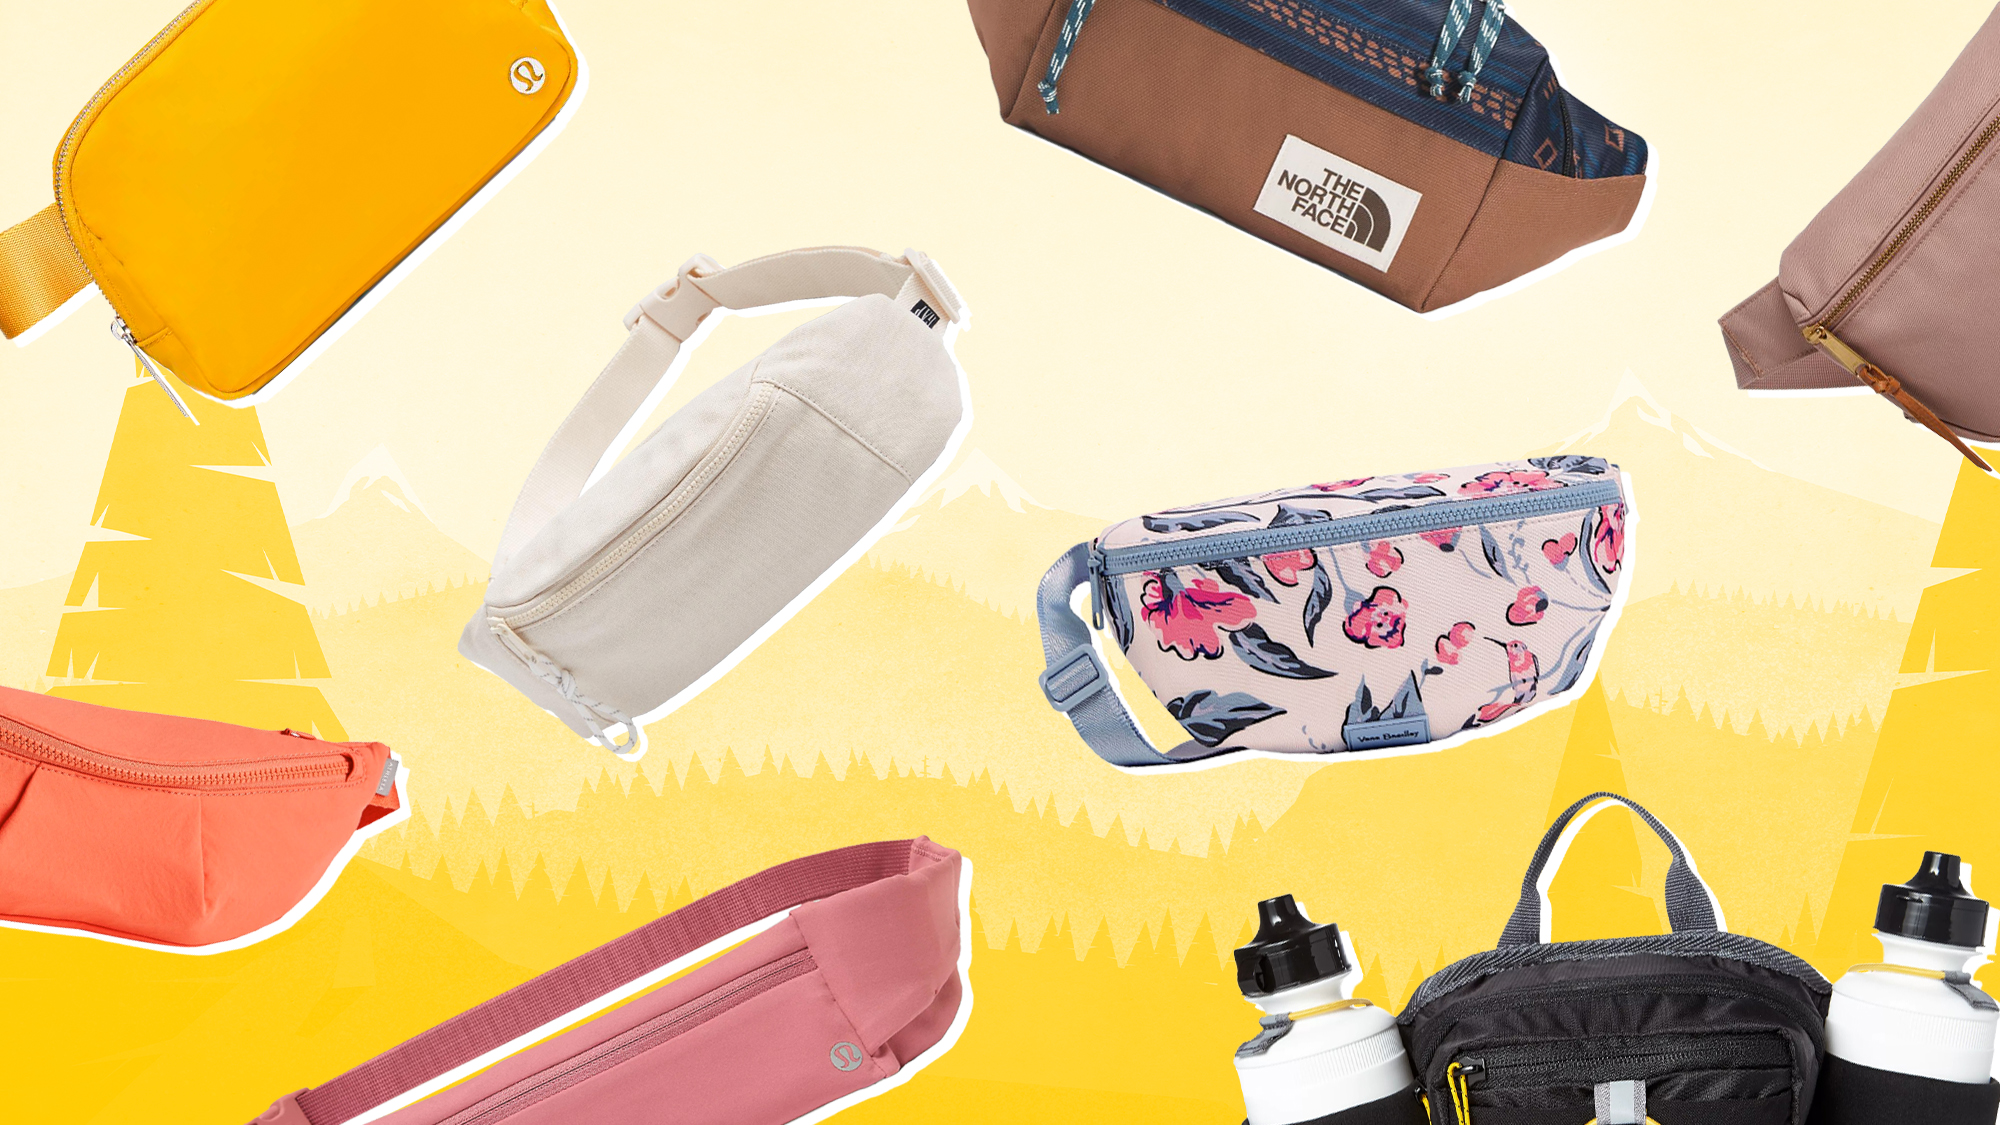 A selection of fanny packs on a designed background